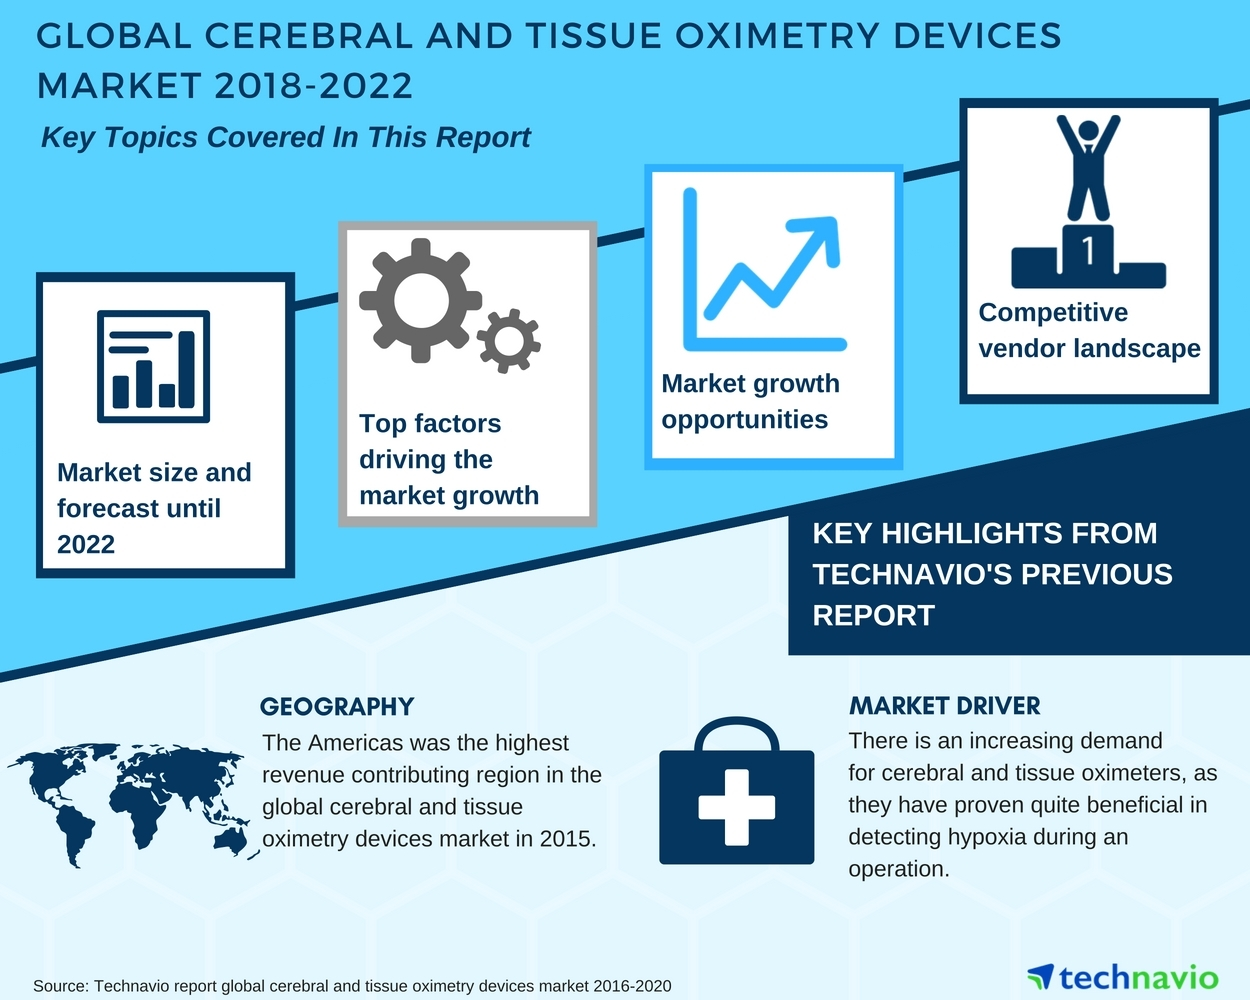 global cerebral and tissue oximetry devices market key insights and rh businesswire com Bryant Wiring Devices Cooper Wiring Devices